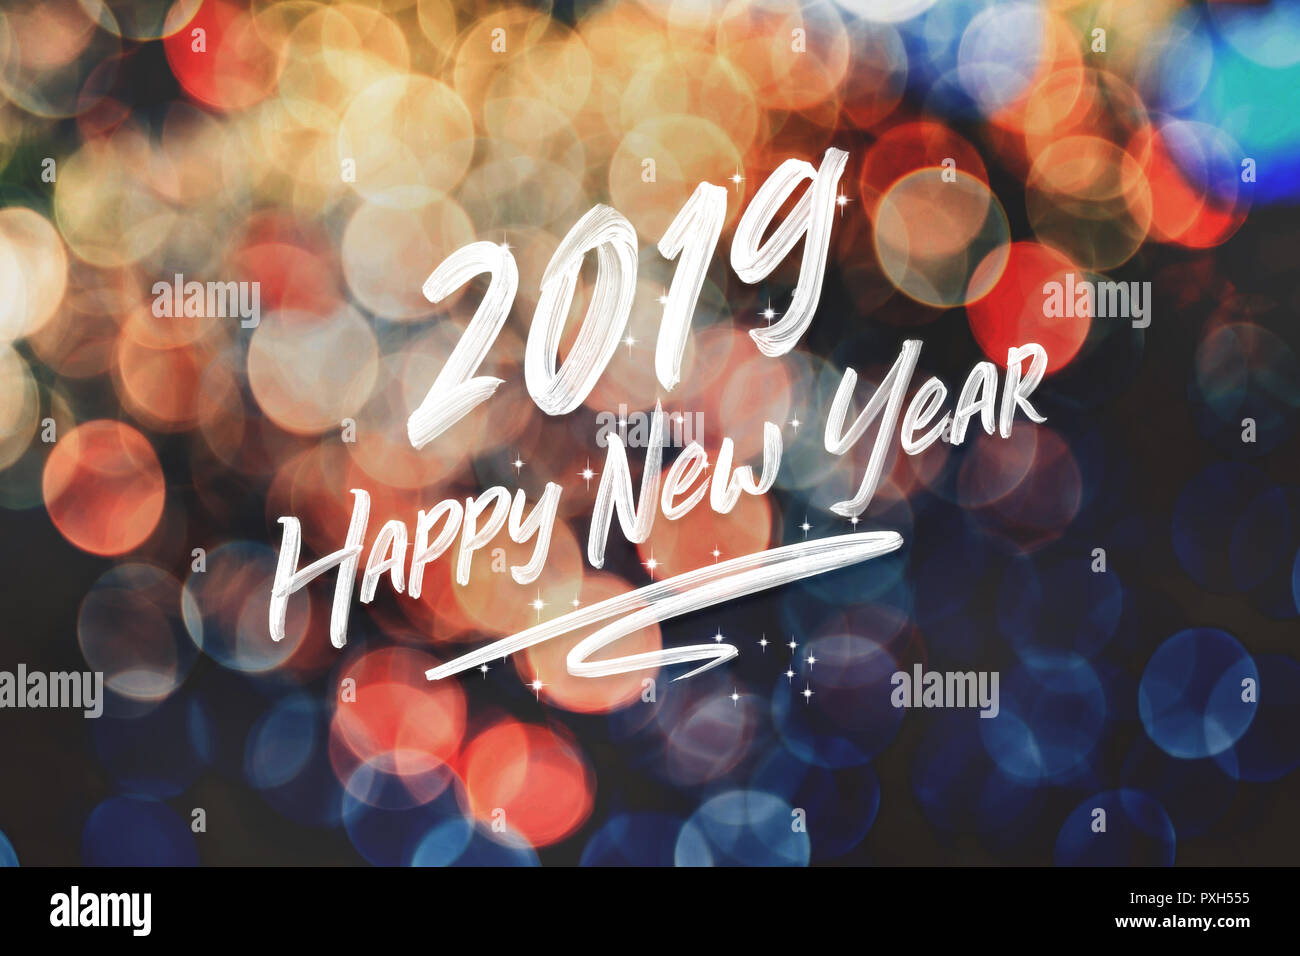 Brush stroke handwriting 2019 happy new year on abstract festive colorful bokeh light background,holiday greeting card - Stock Image